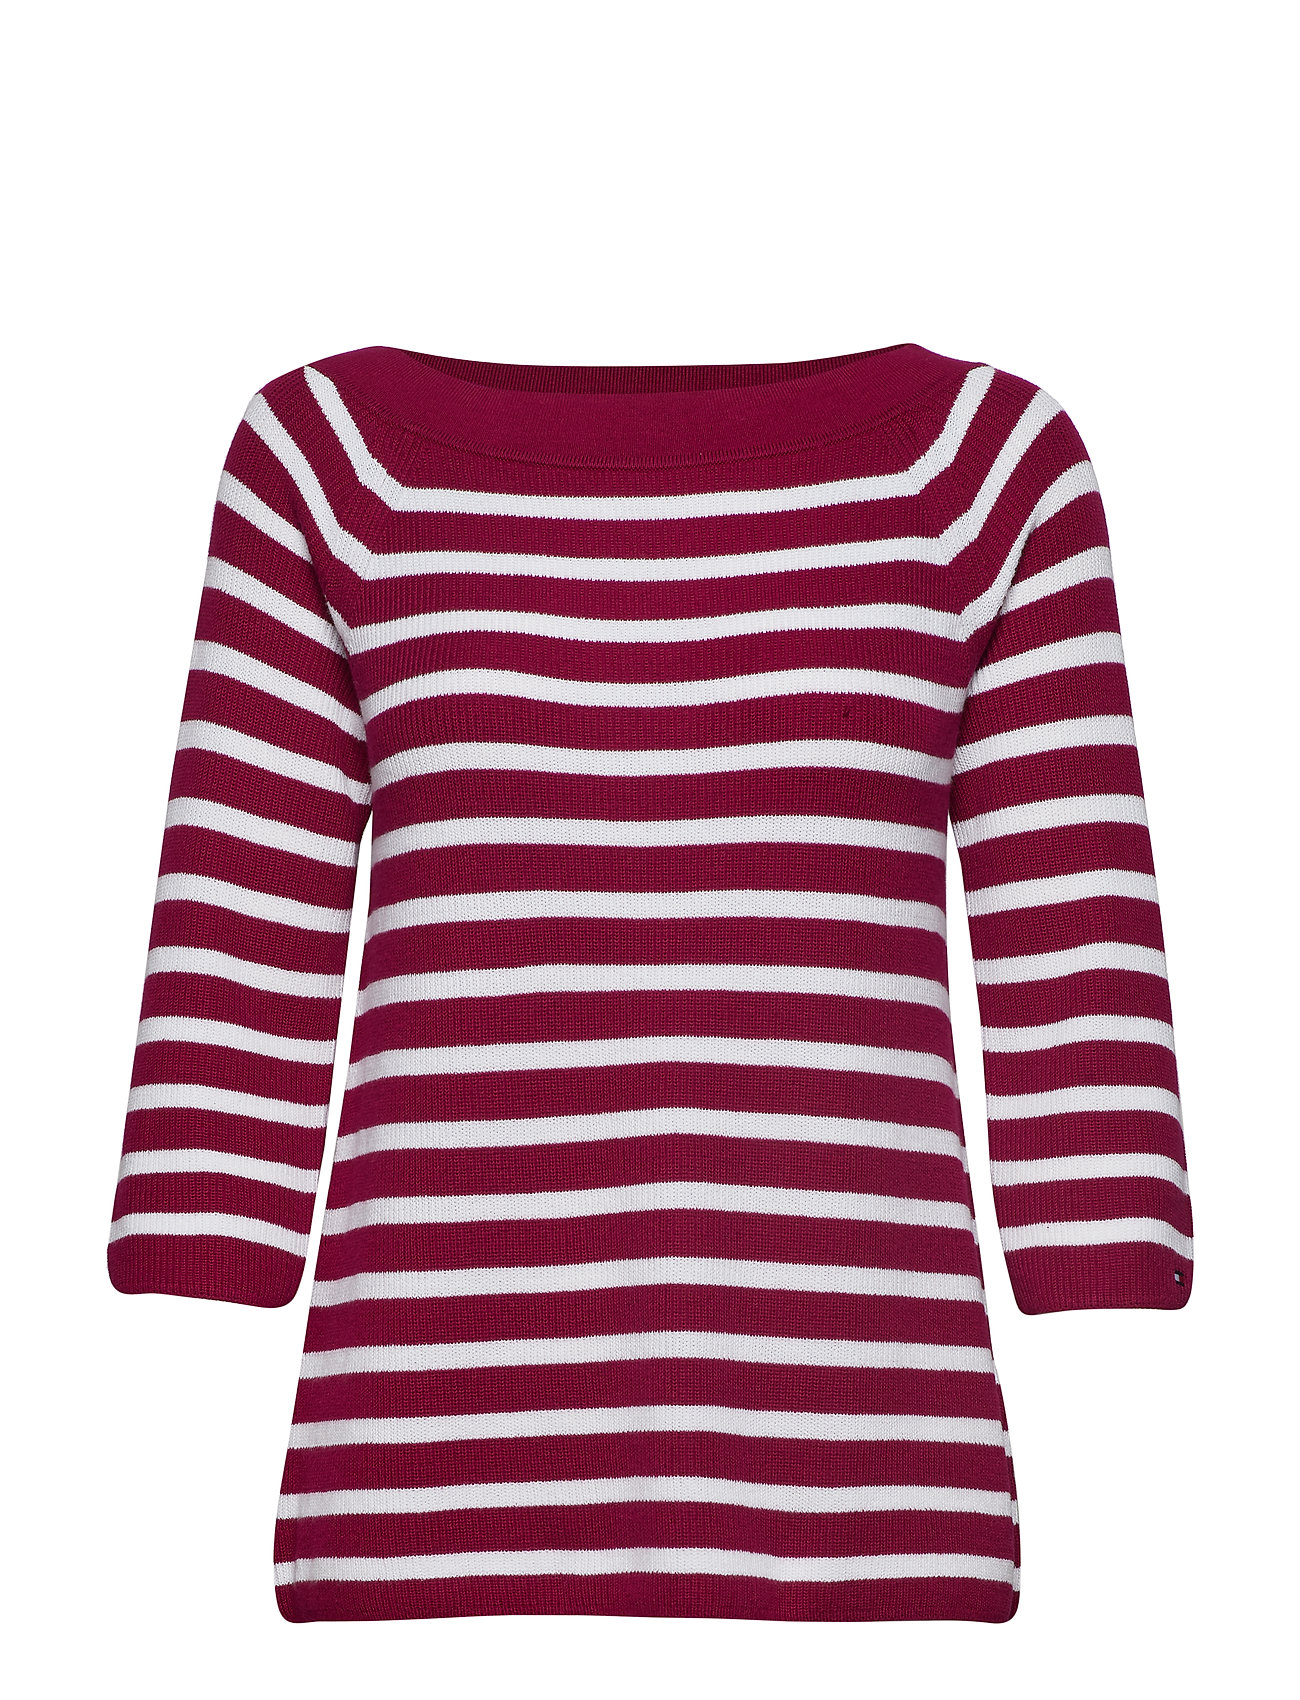 Tommy Hilfiger ABBIE OFF SHOULDER S - ABBIE STP / BEET RED